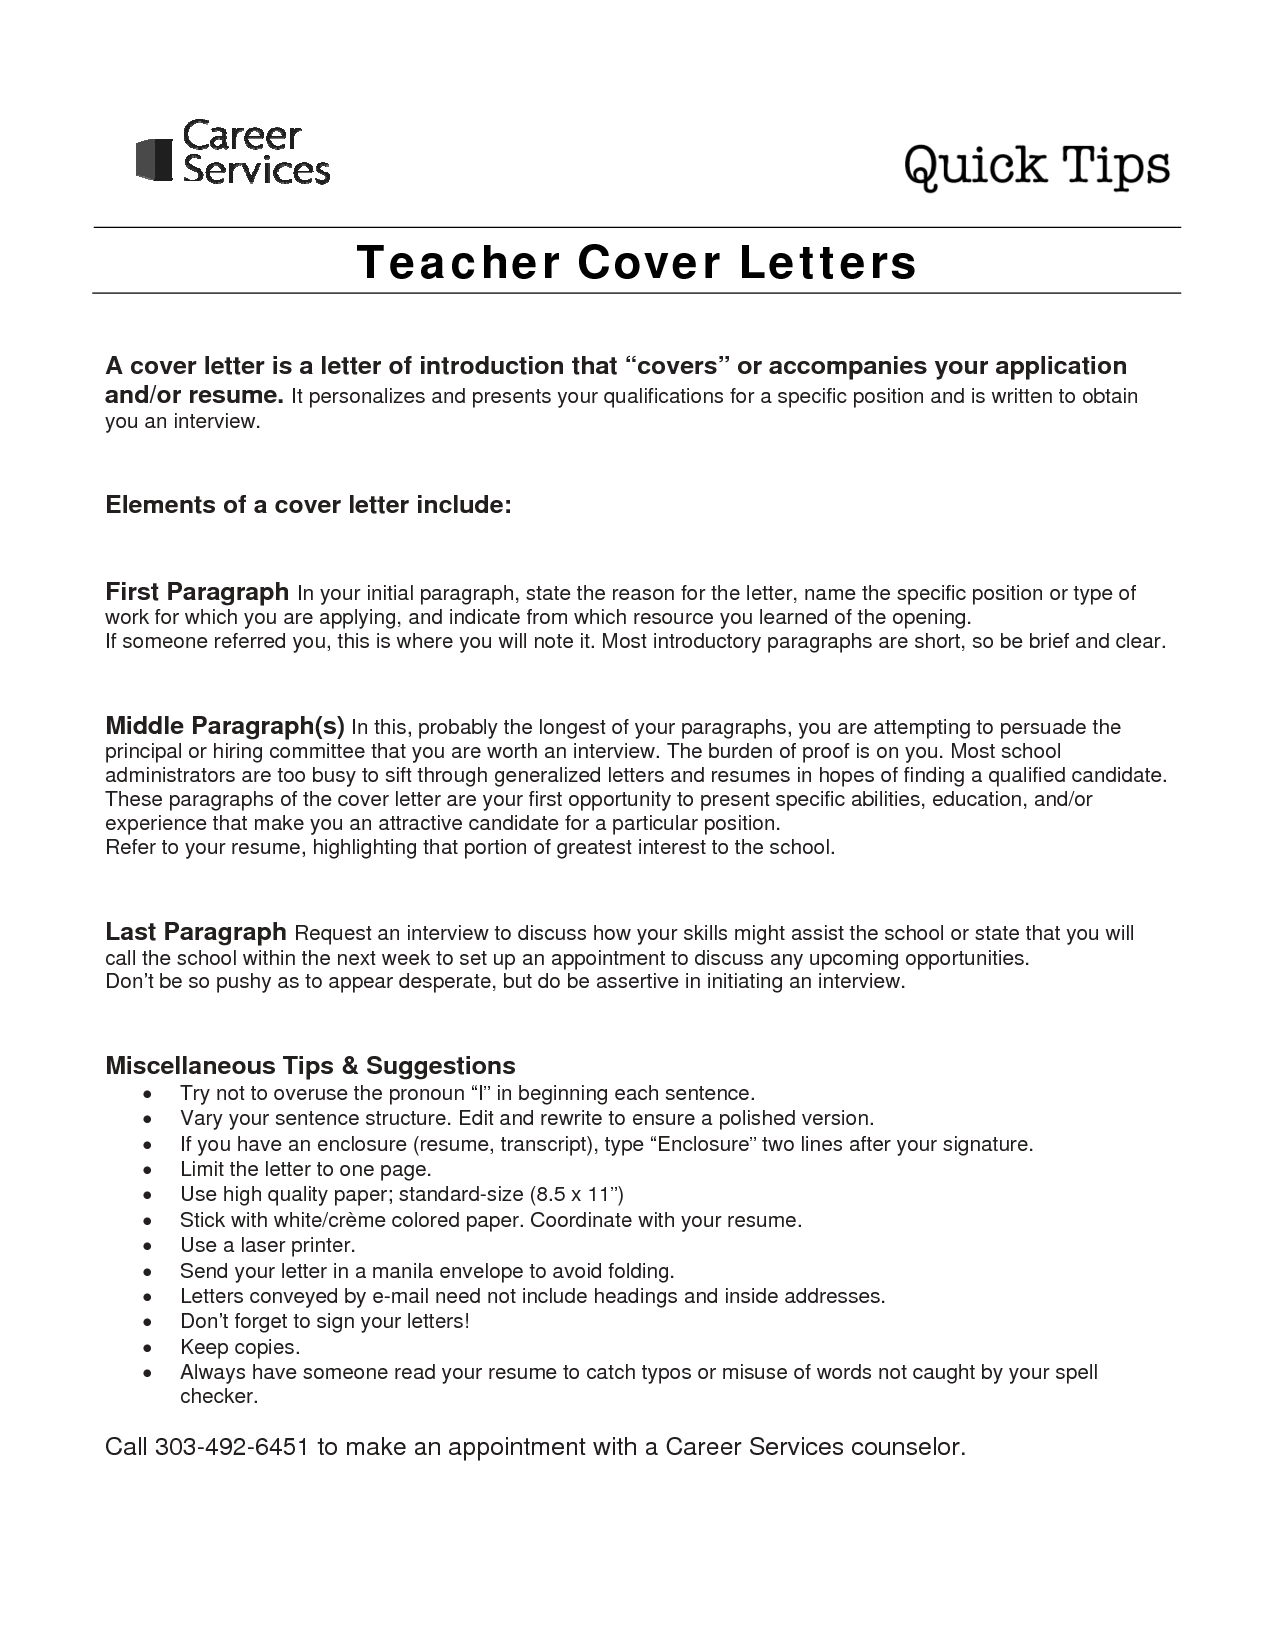 Cover letter so you leaves impression httpresumesdesign cover letter so you leaves impression httpresumesdesigncover letter so you leaves impression thecheapjerseys Image collections